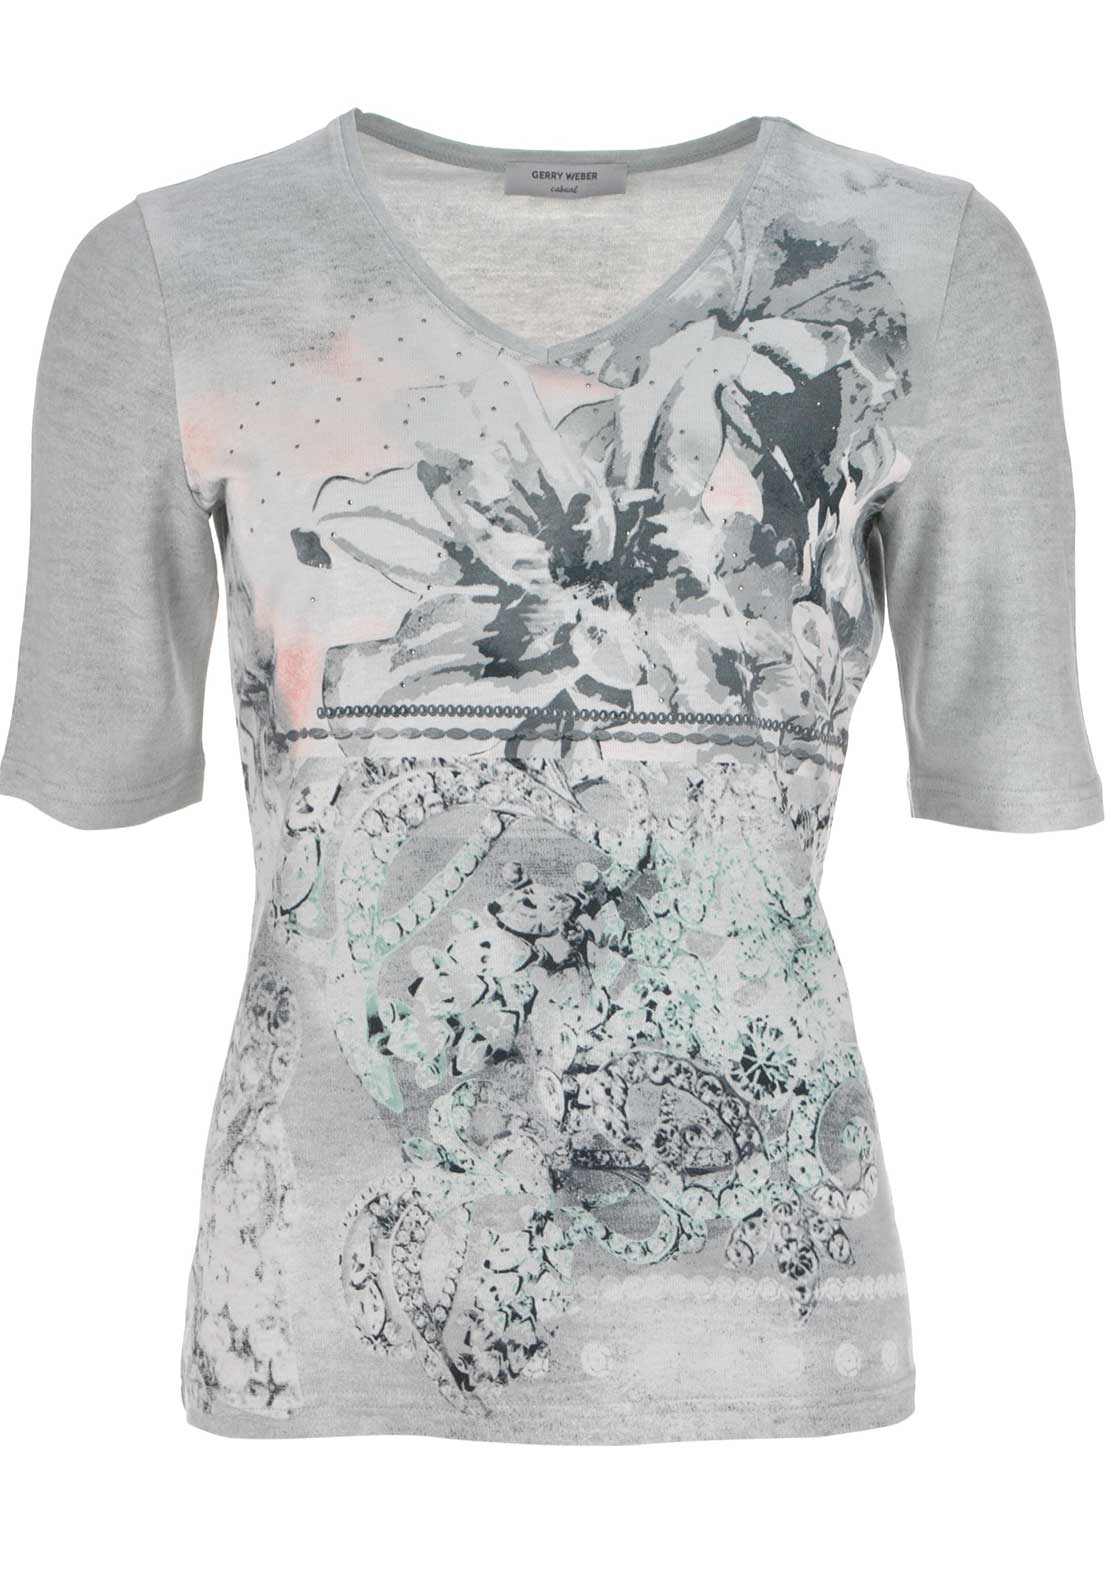 Gerry Weber Printed Short Sleeve V-Neck Top, Grey Multi